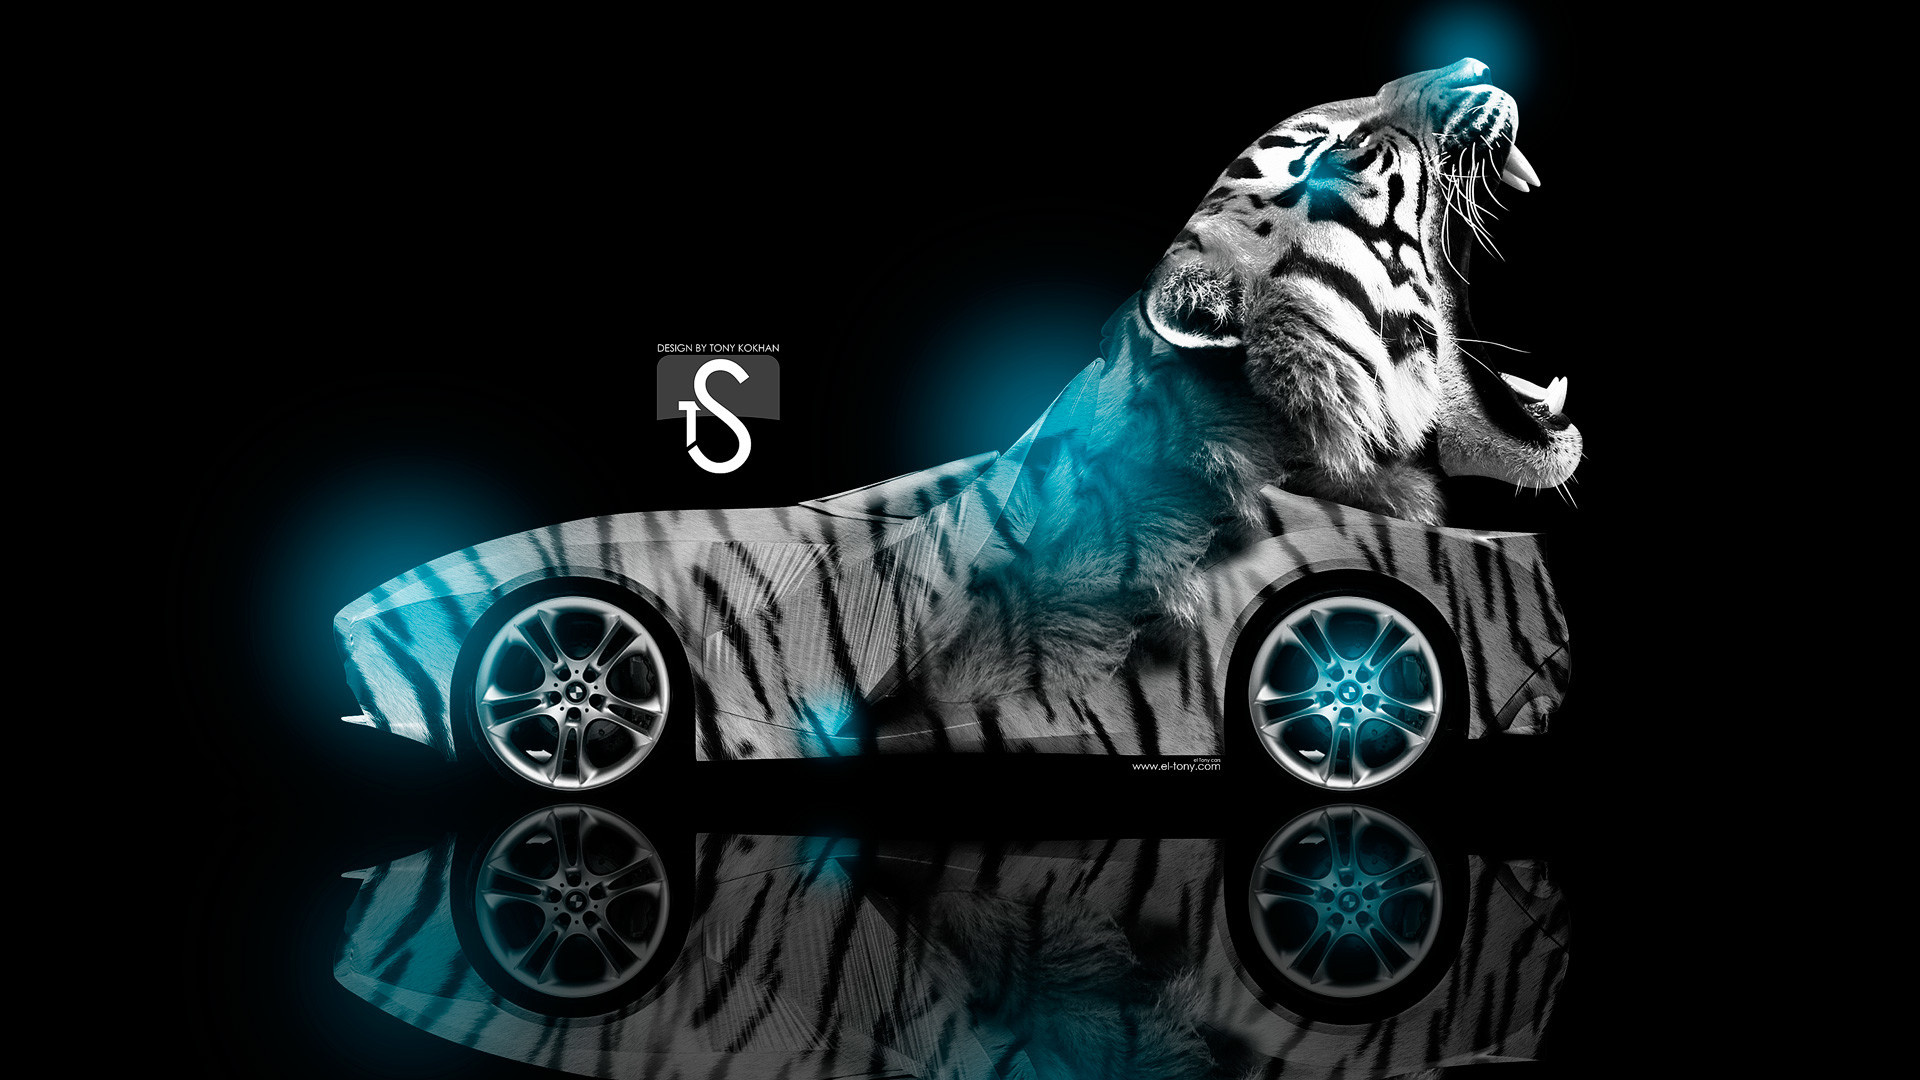 1920x1080 Cool Animal Wallpaper Light Blue Tiger Quotes